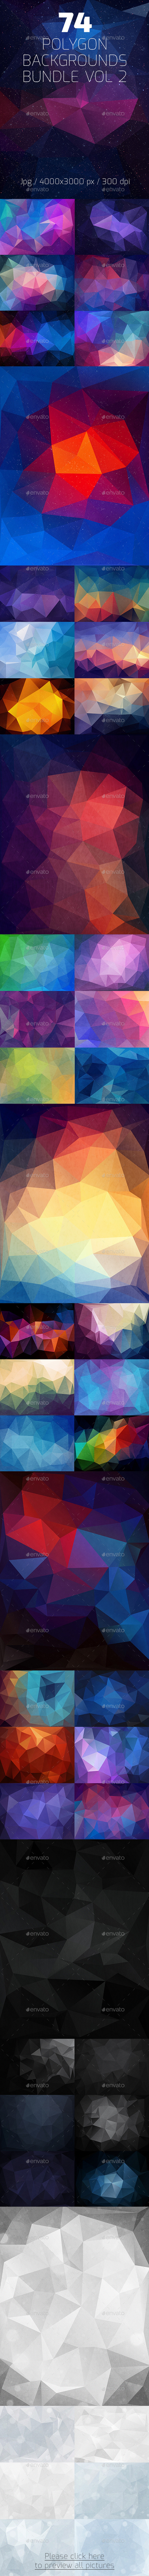 74 Polygon Backgrounds Bundle Vol 2 - Abstract Backgrounds